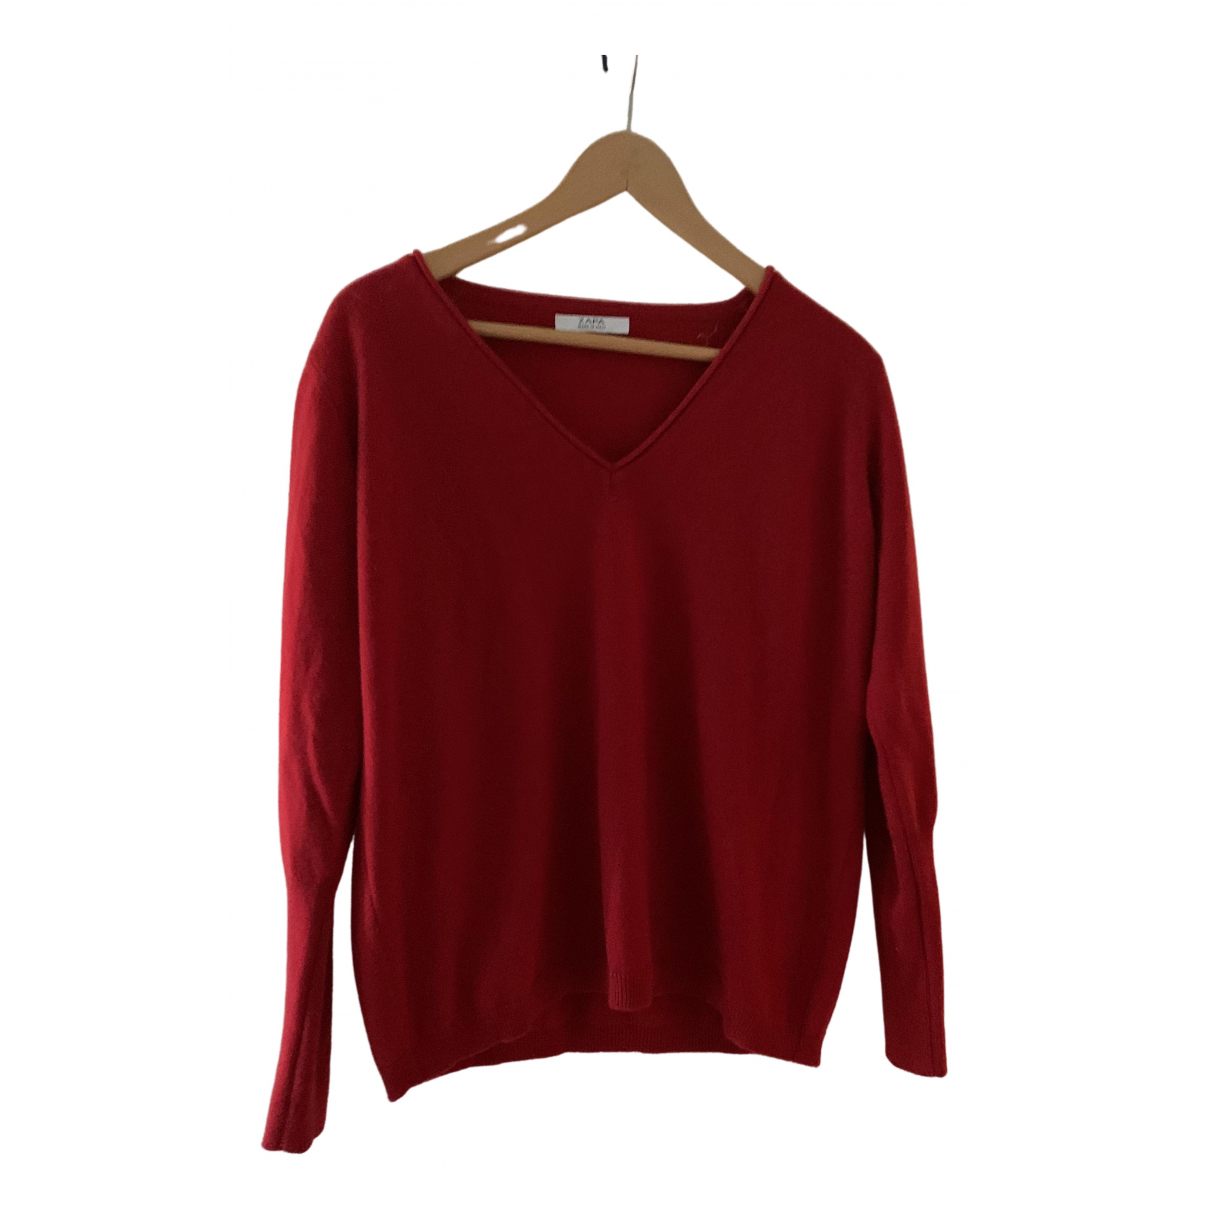 Zapa \N Red Cashmere dress for Women 2 0-5